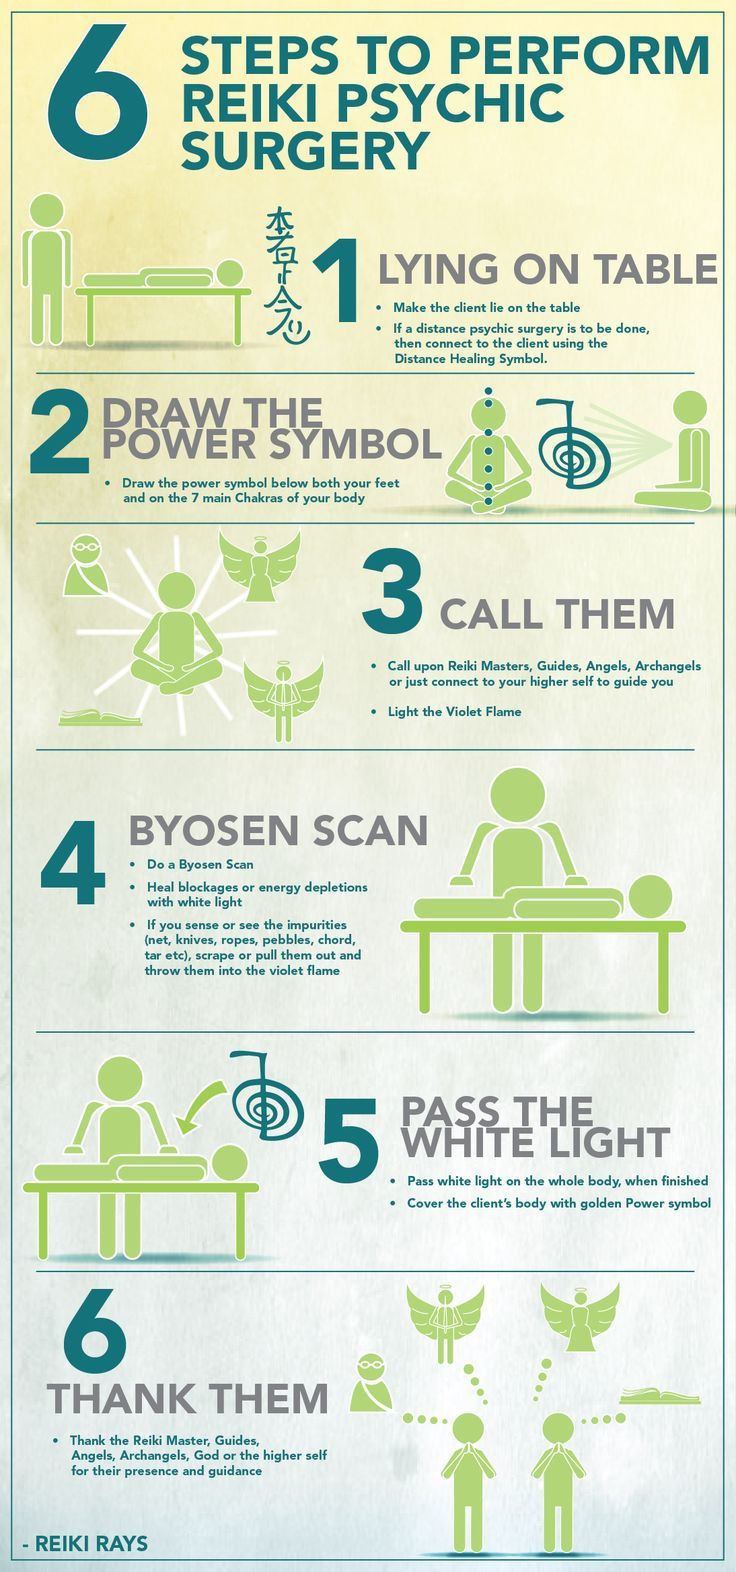 Infographic 6 steps to perform reiki psychic surgery surgery interesting6 steps to perform reiki psychic surgery biocorpaavc Gallery